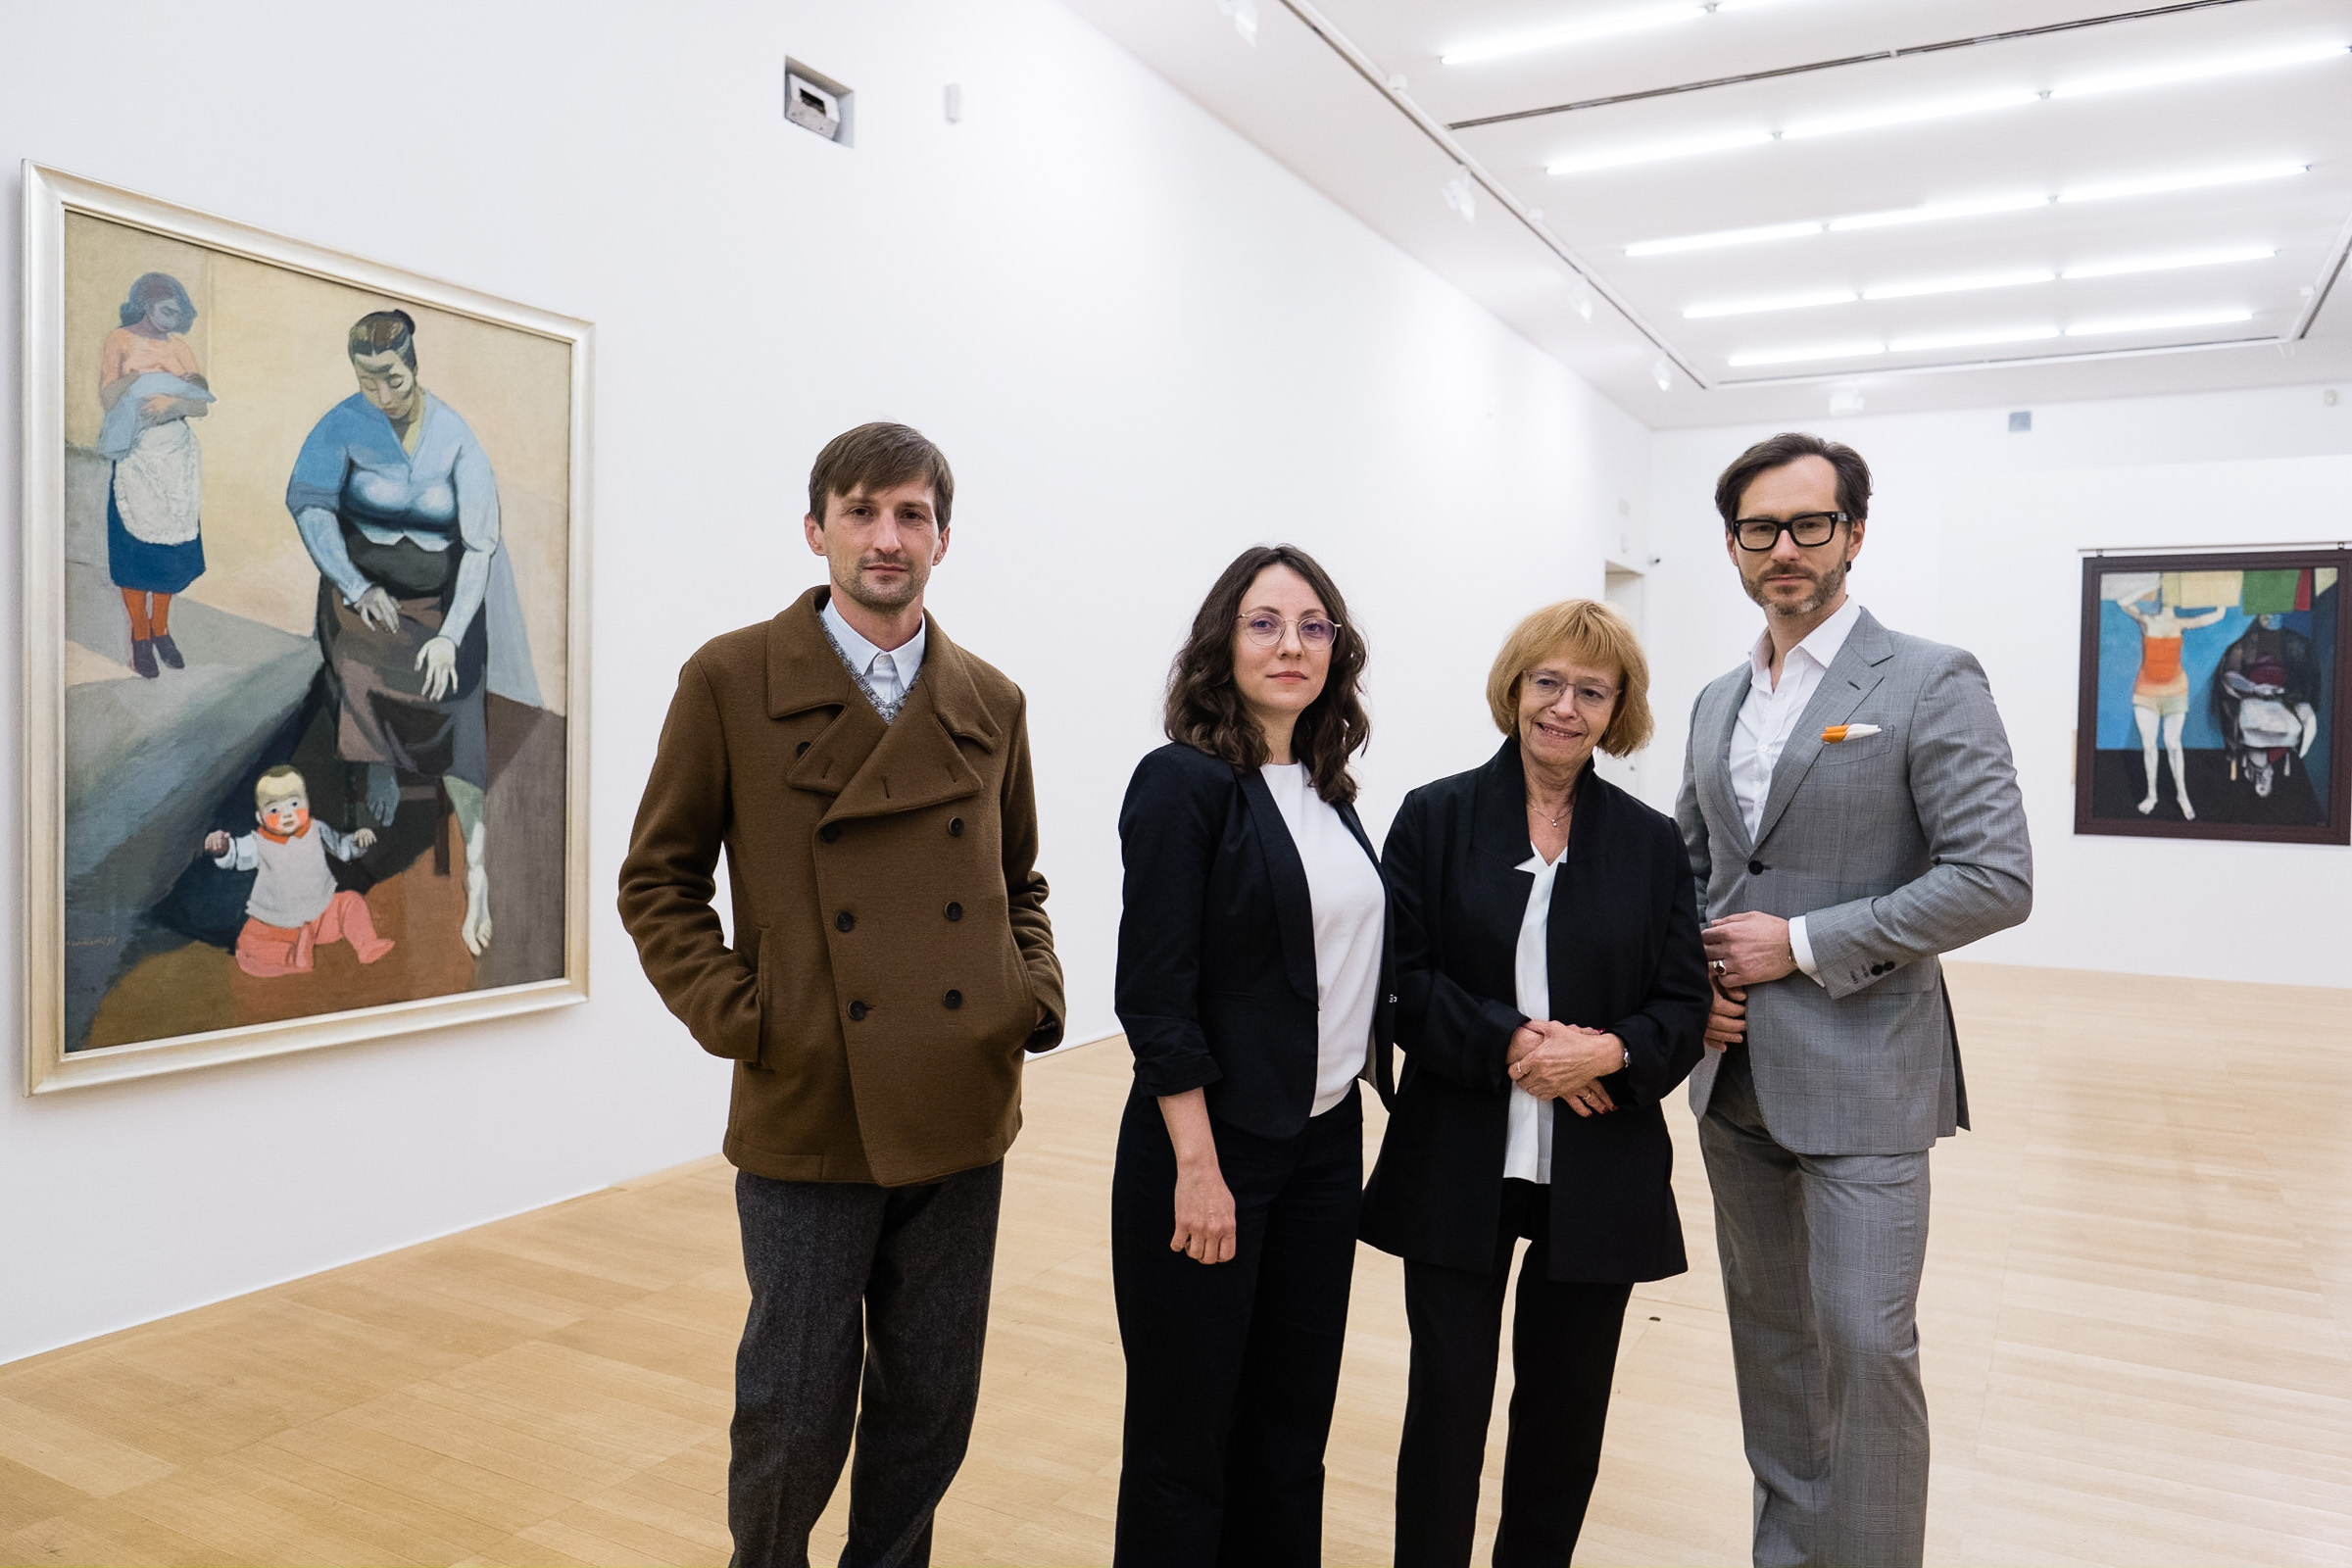 Marko Jenko (curator of the exhibition), Magdalena Ziółkowska (curator of the exhibition), Marta Wróblewska (daughter of Andrzej Wróblewski) and Wojciech Grzybała (curator of the exhibition)